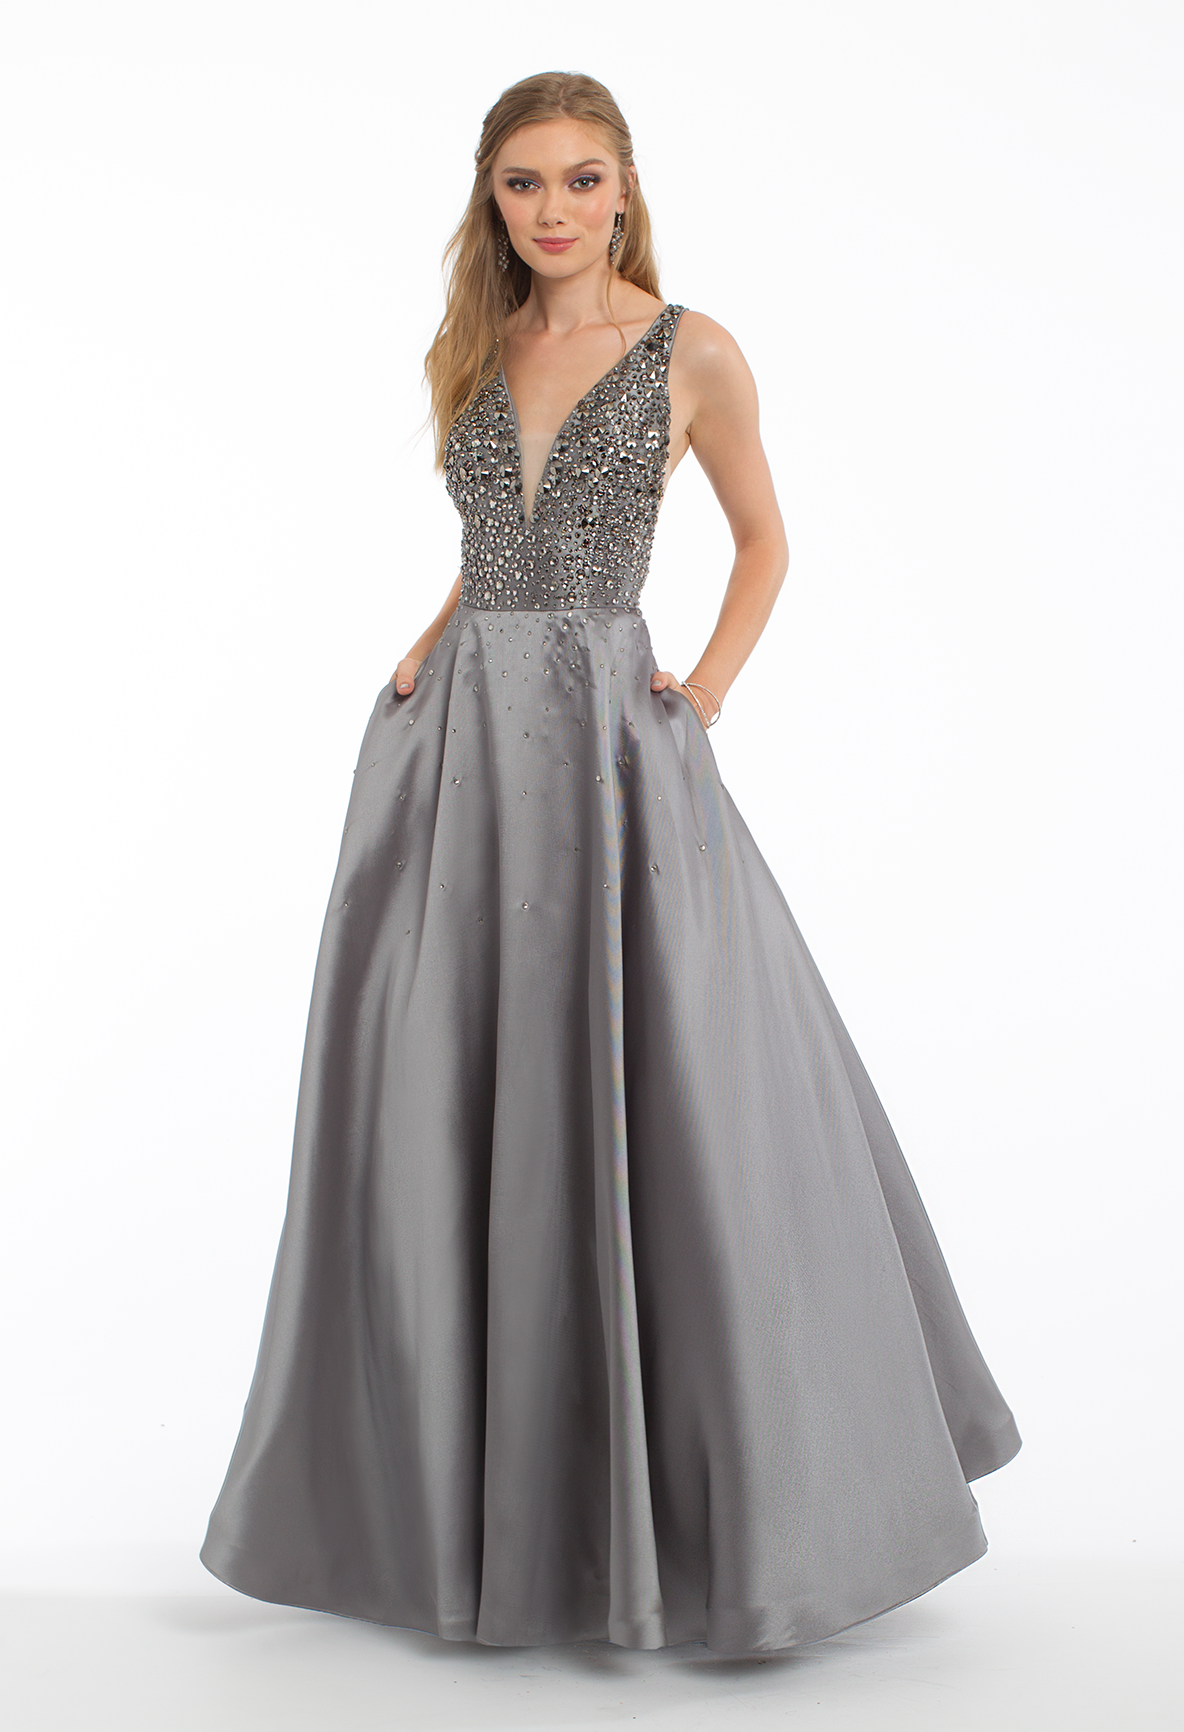 This Ballgown Dress Is A Complete Gem The Plunging Neckline Beaded Bodice And Open Scoop Back Will Dazzle On The Da Wedding Guest Dress Plunge Dress Dresses [ 1732 x 1184 Pixel ]